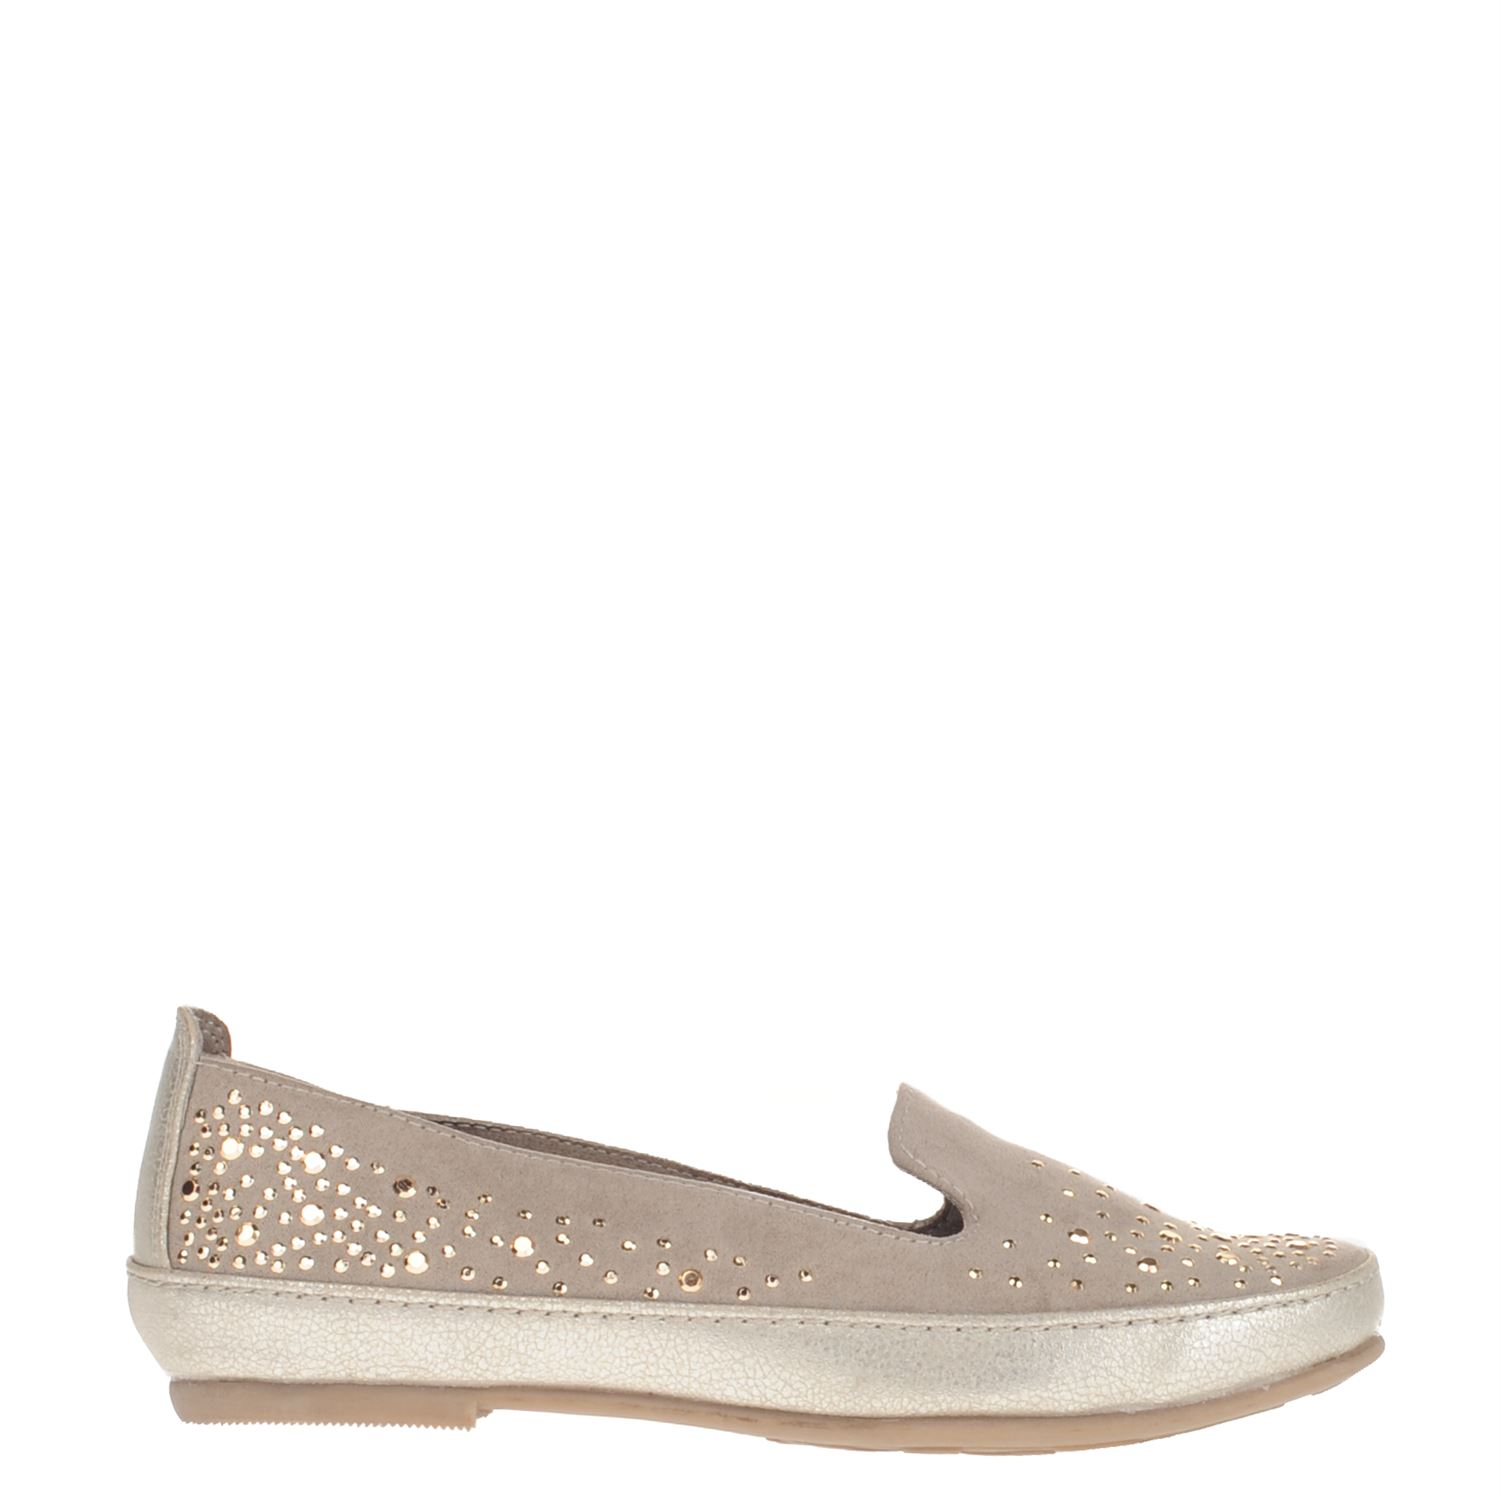 Marco Tozzi dames mocassins   loafers taupe 9dc7083bb3c4